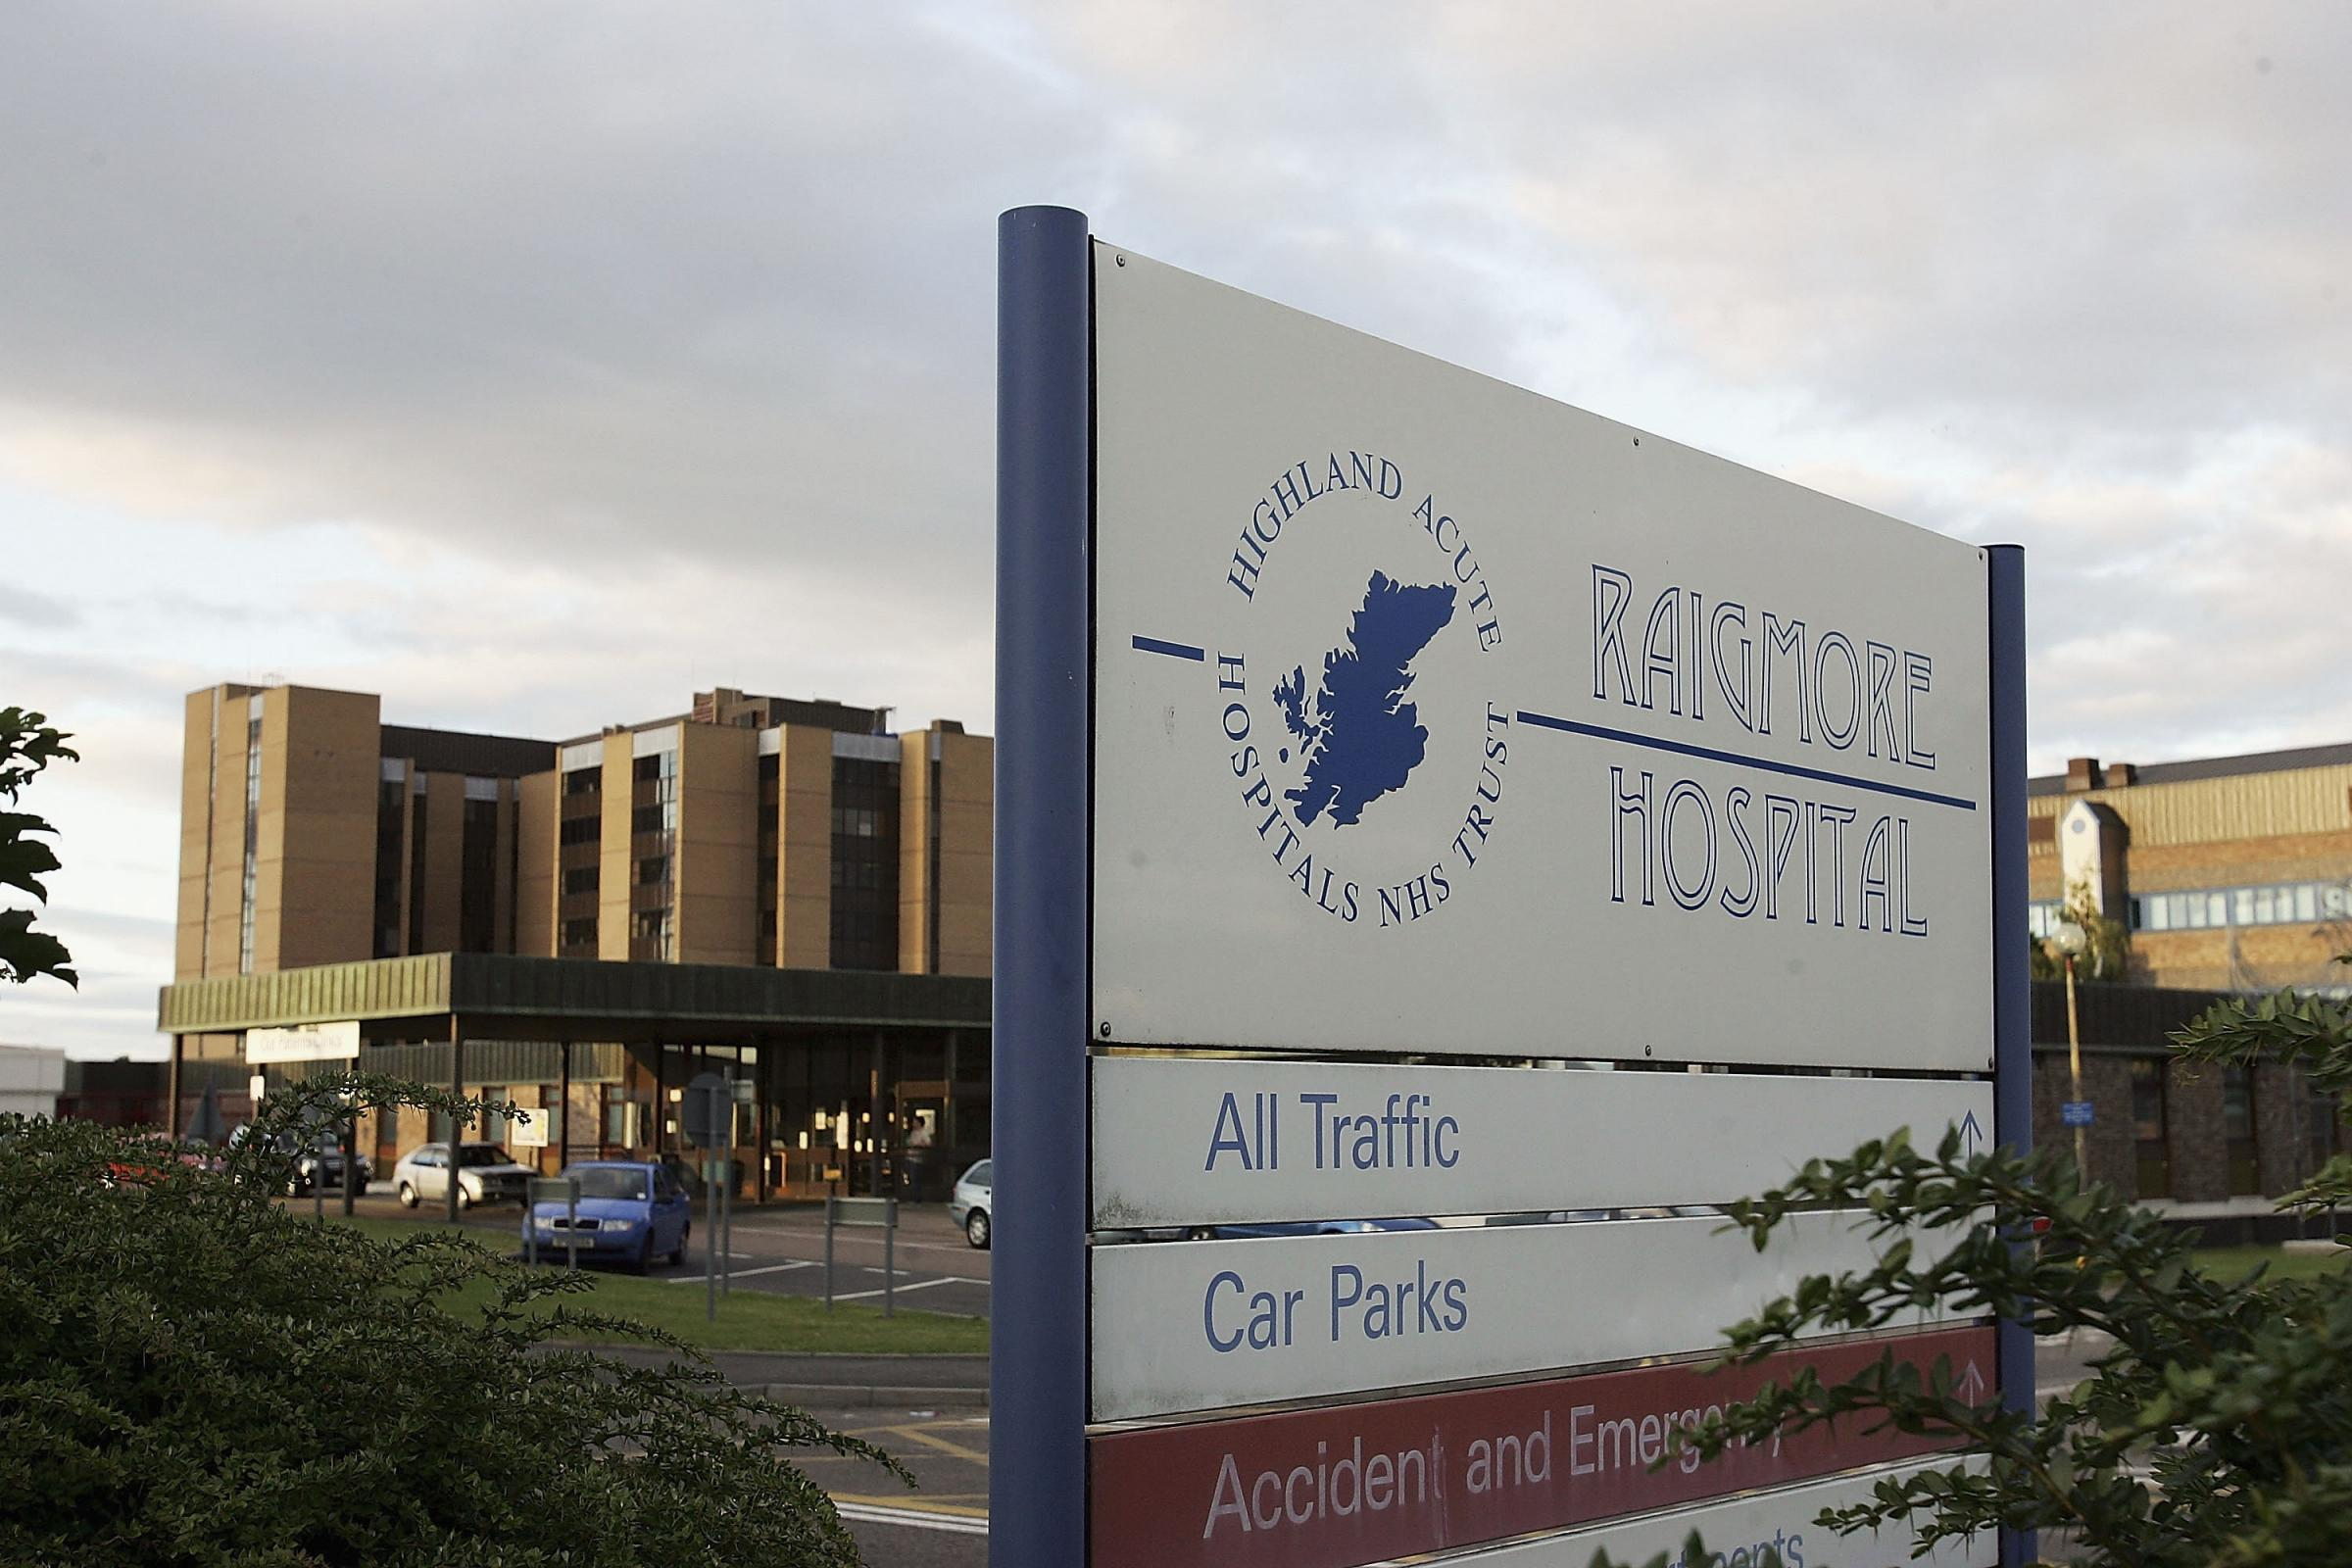 QC to lead investigation into NHS Highland 'bullying' claims